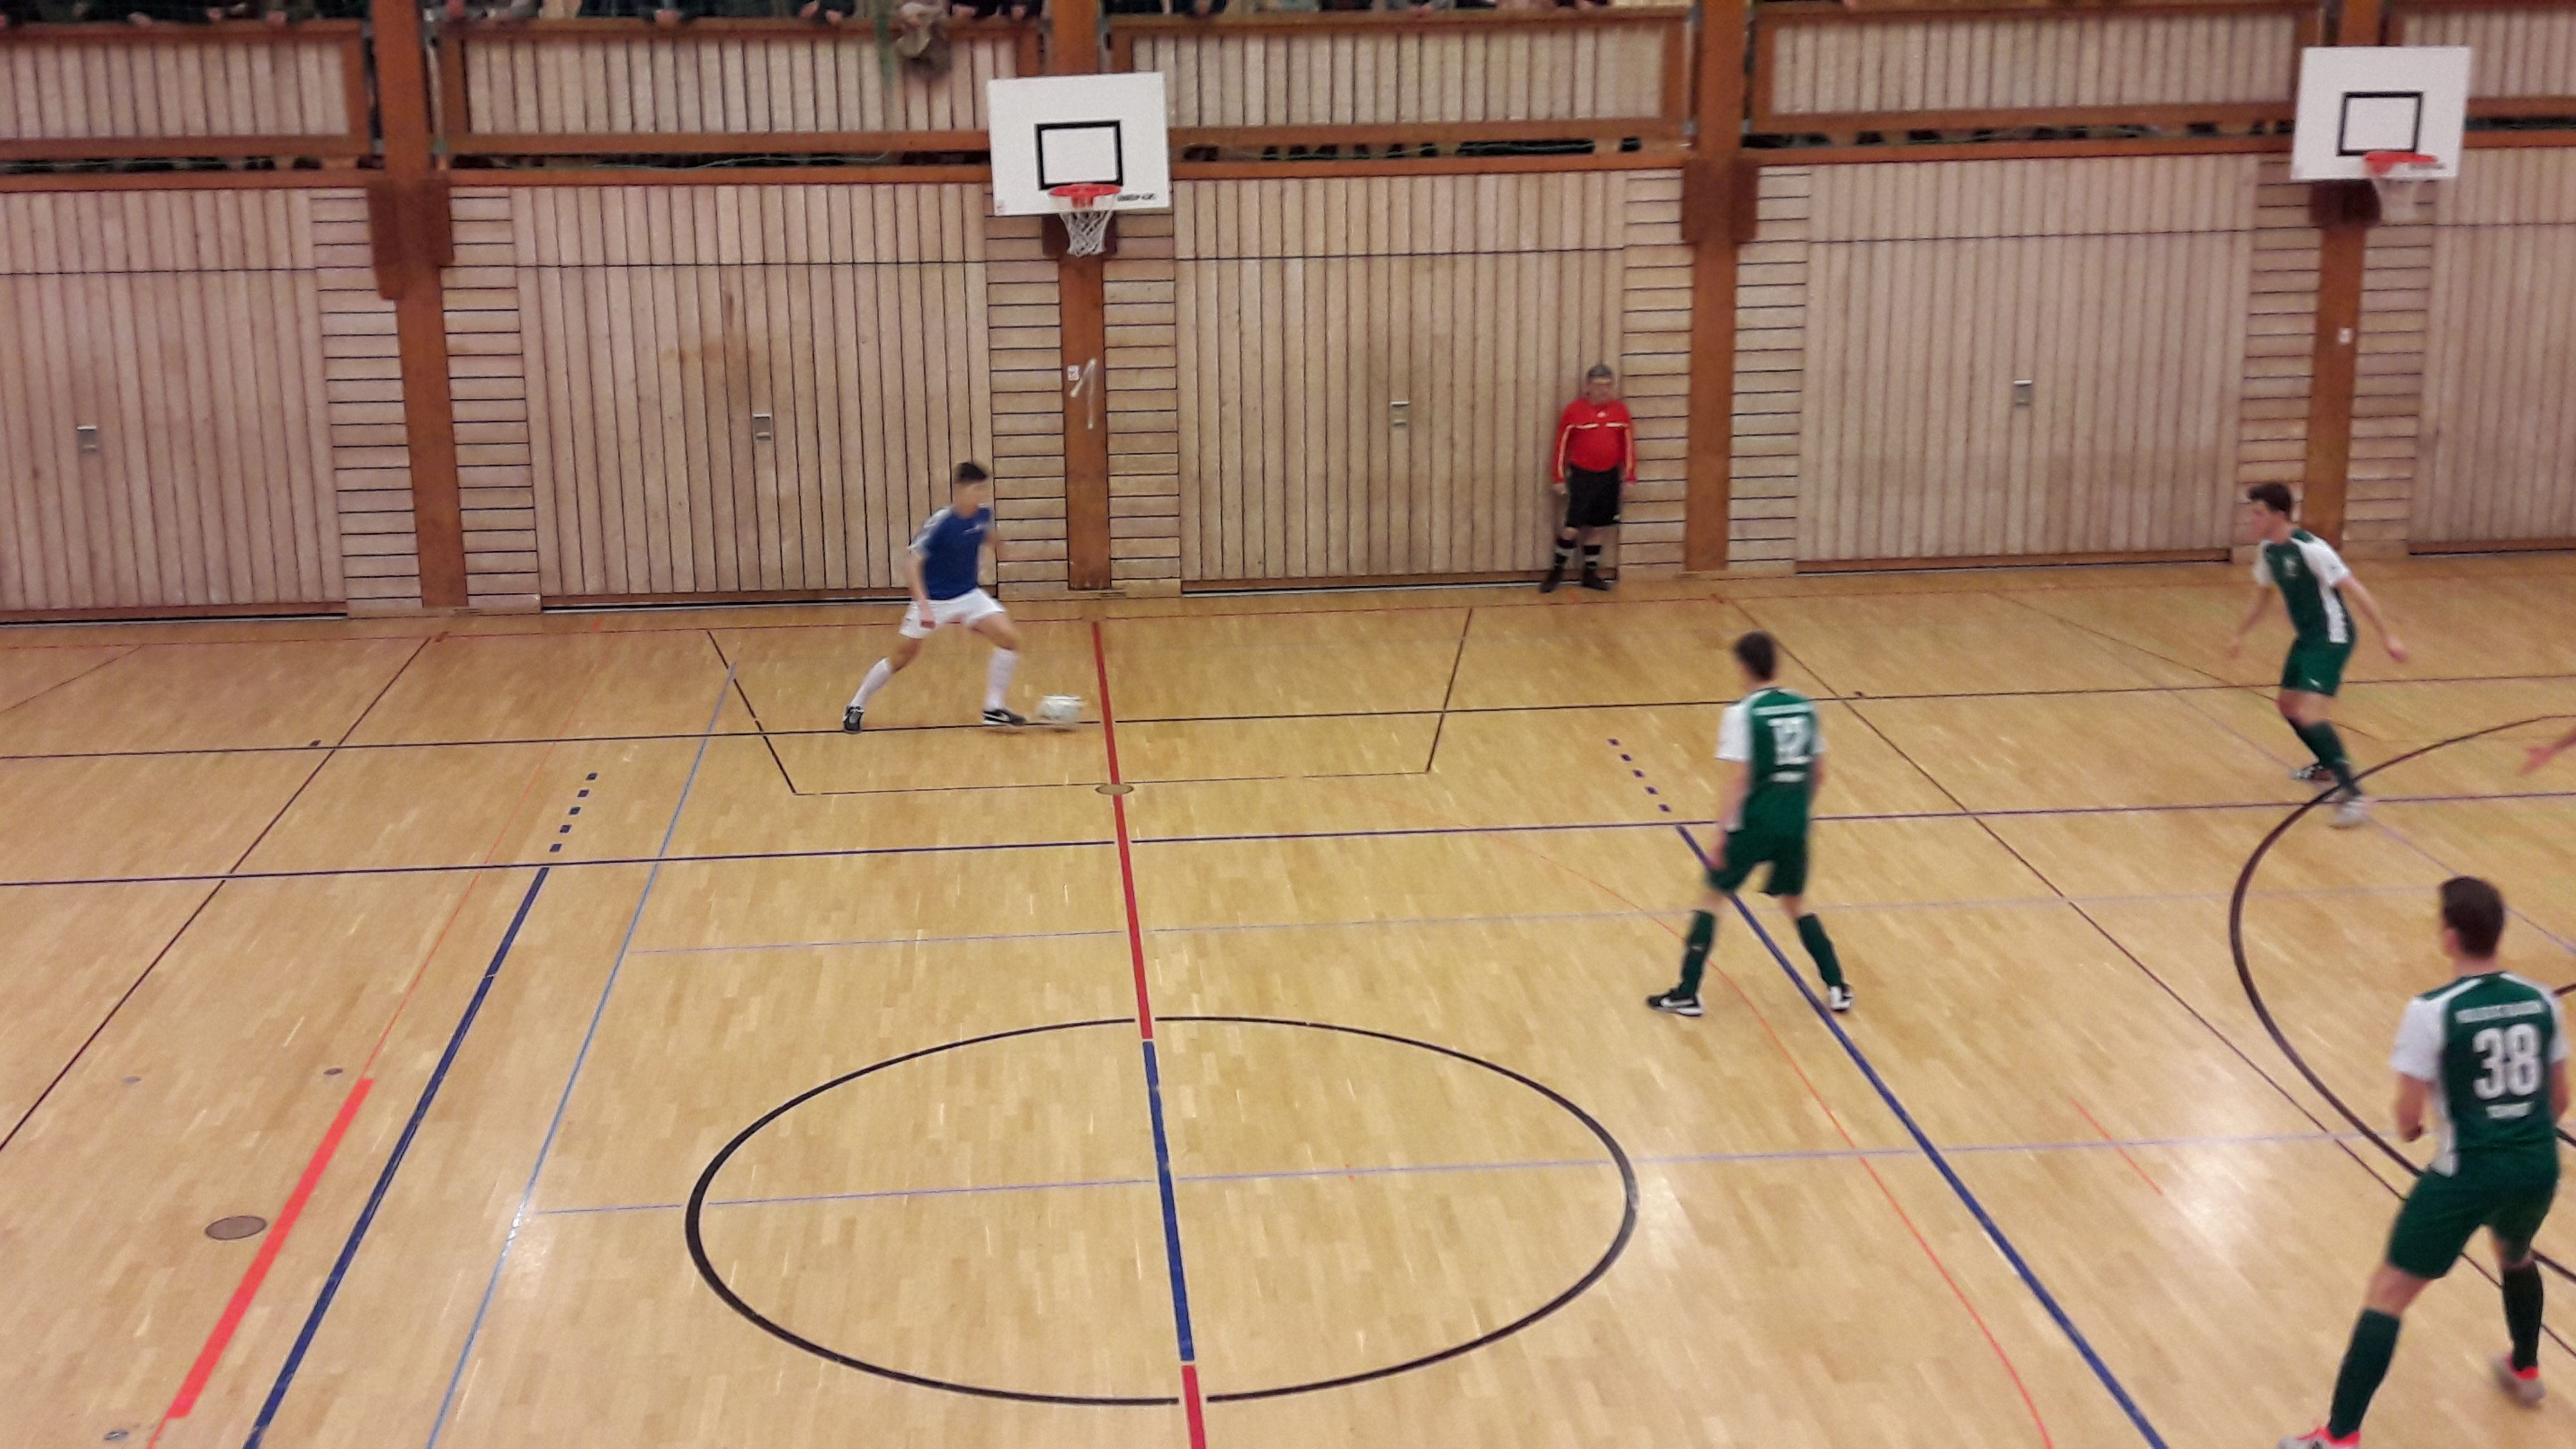 2. Internationale Fußball Internate Hallen-Cup 2017 in St. Blasien